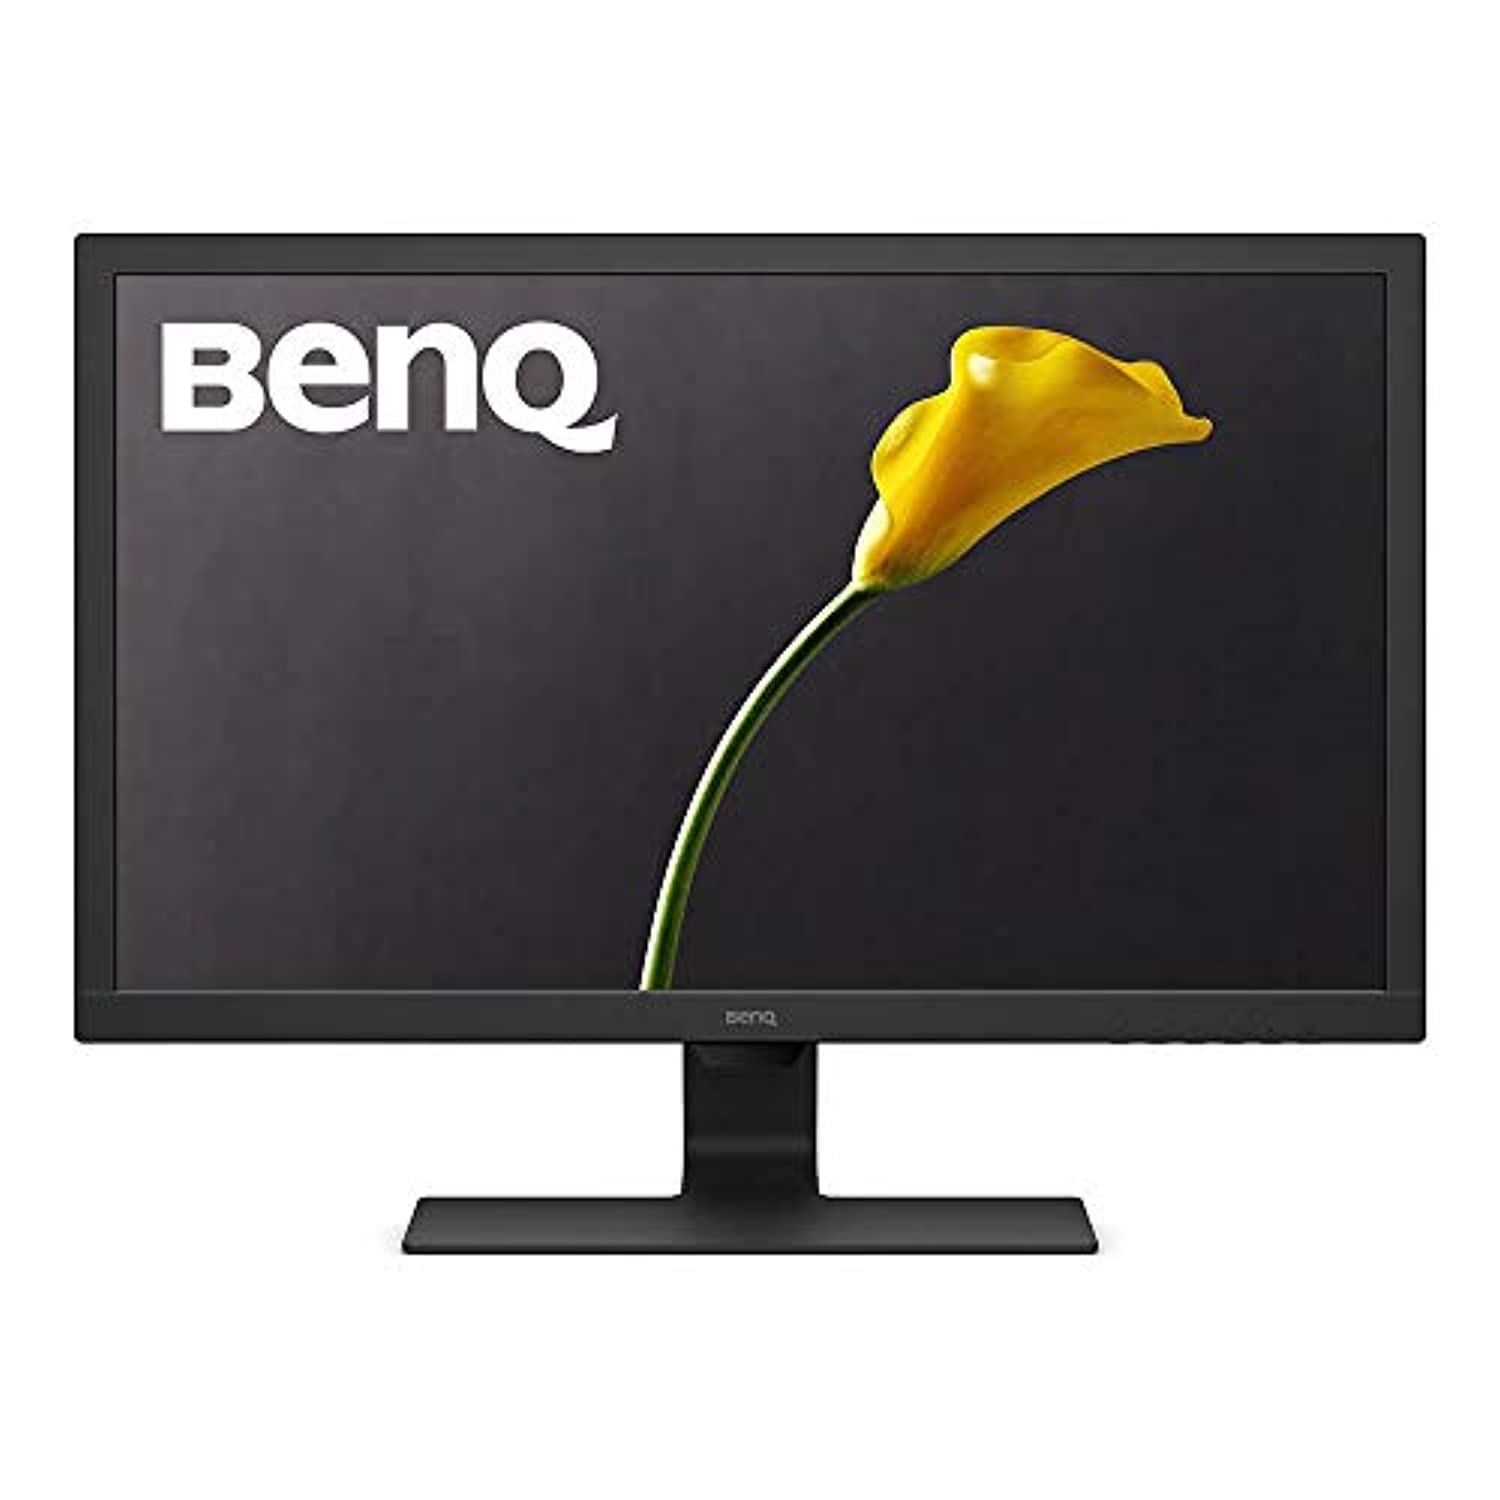 Classier: Buy BenQ BenQ 24 Inch 1080P Monitor | 75 Hz for Gaming | GL2480,Black & Logitech MK270 Wireless Keyboard and Mouse Combo - 2.4GHz Dropout-Free Connection (Frustration-Free Packaging)